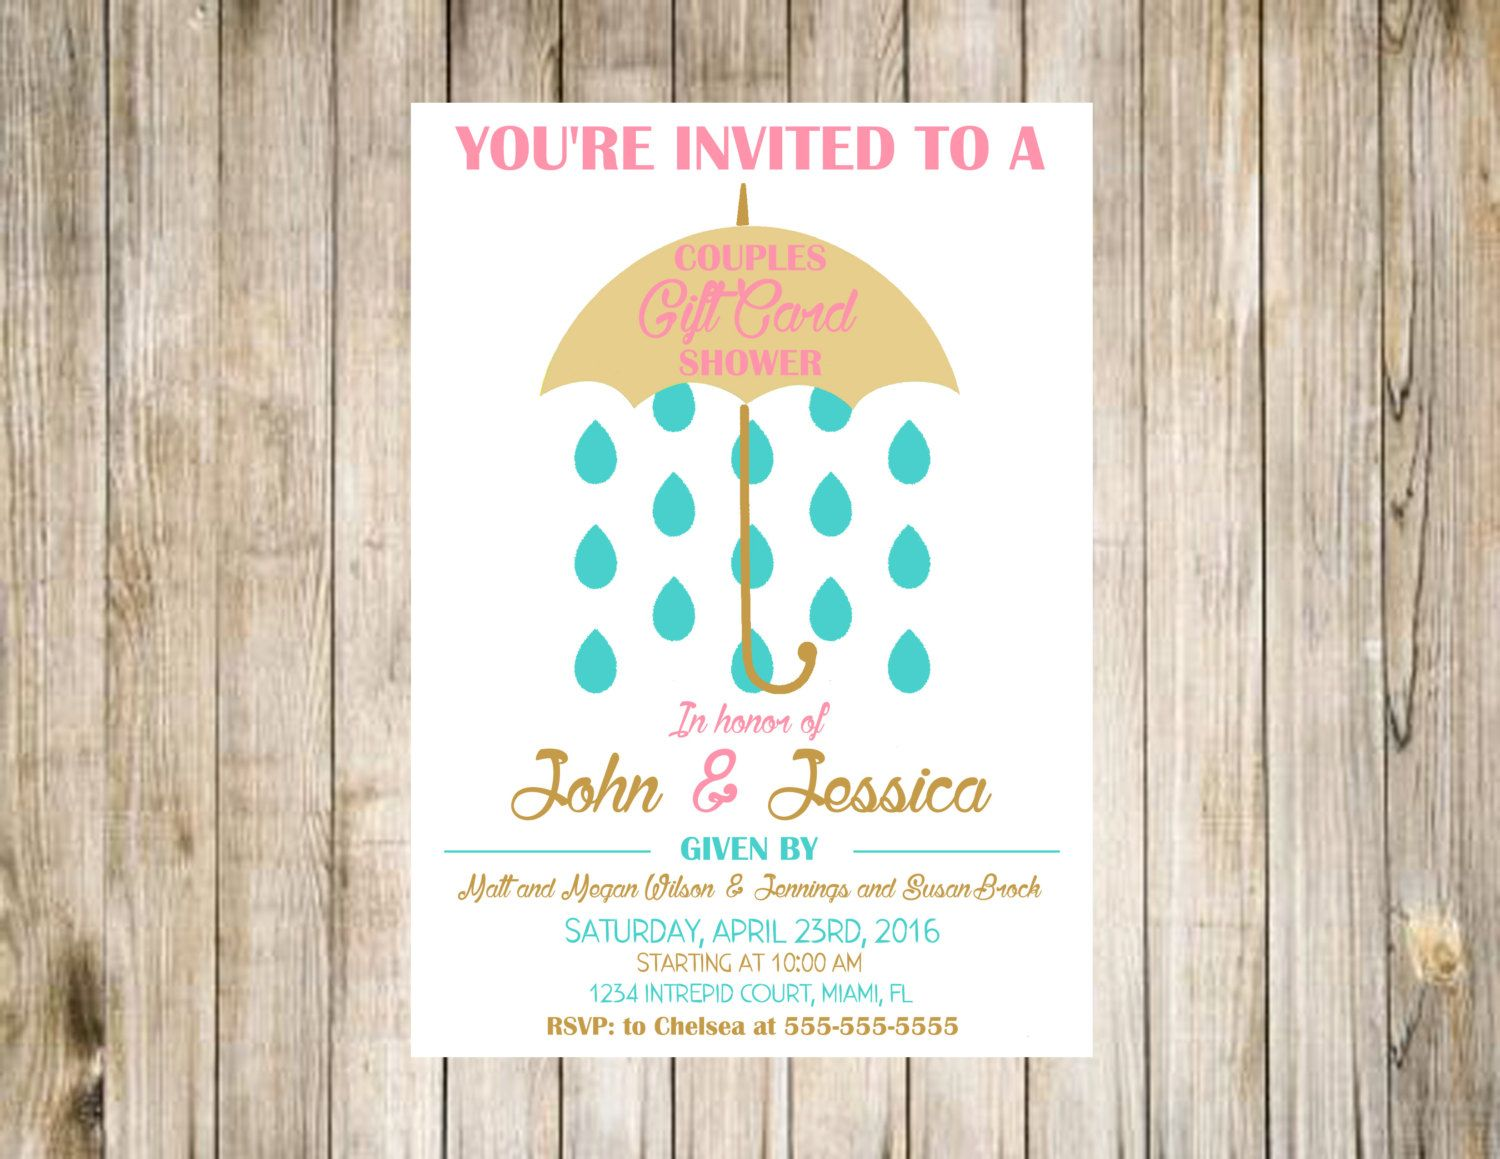 CUSTOMIZED PRINTABLE Couples Wedding Shower Invitation – Gift Card Wedding Shower